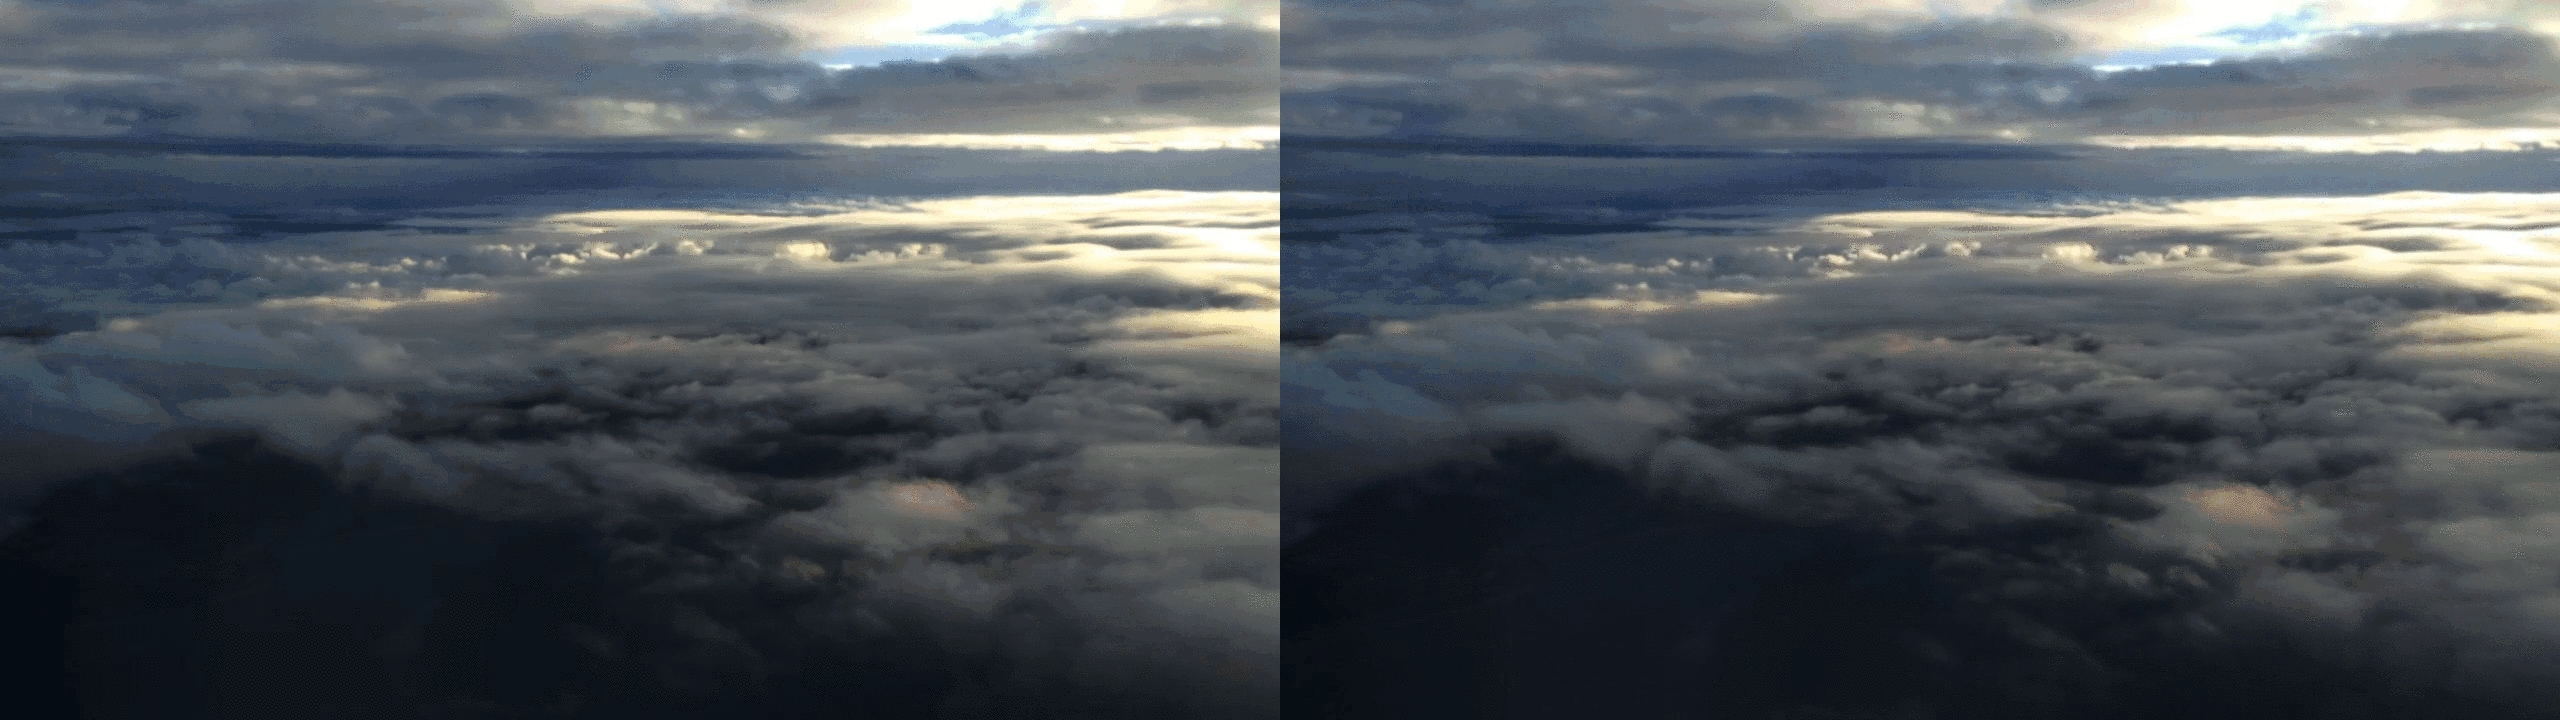 crossview, Plane perspective GIFs